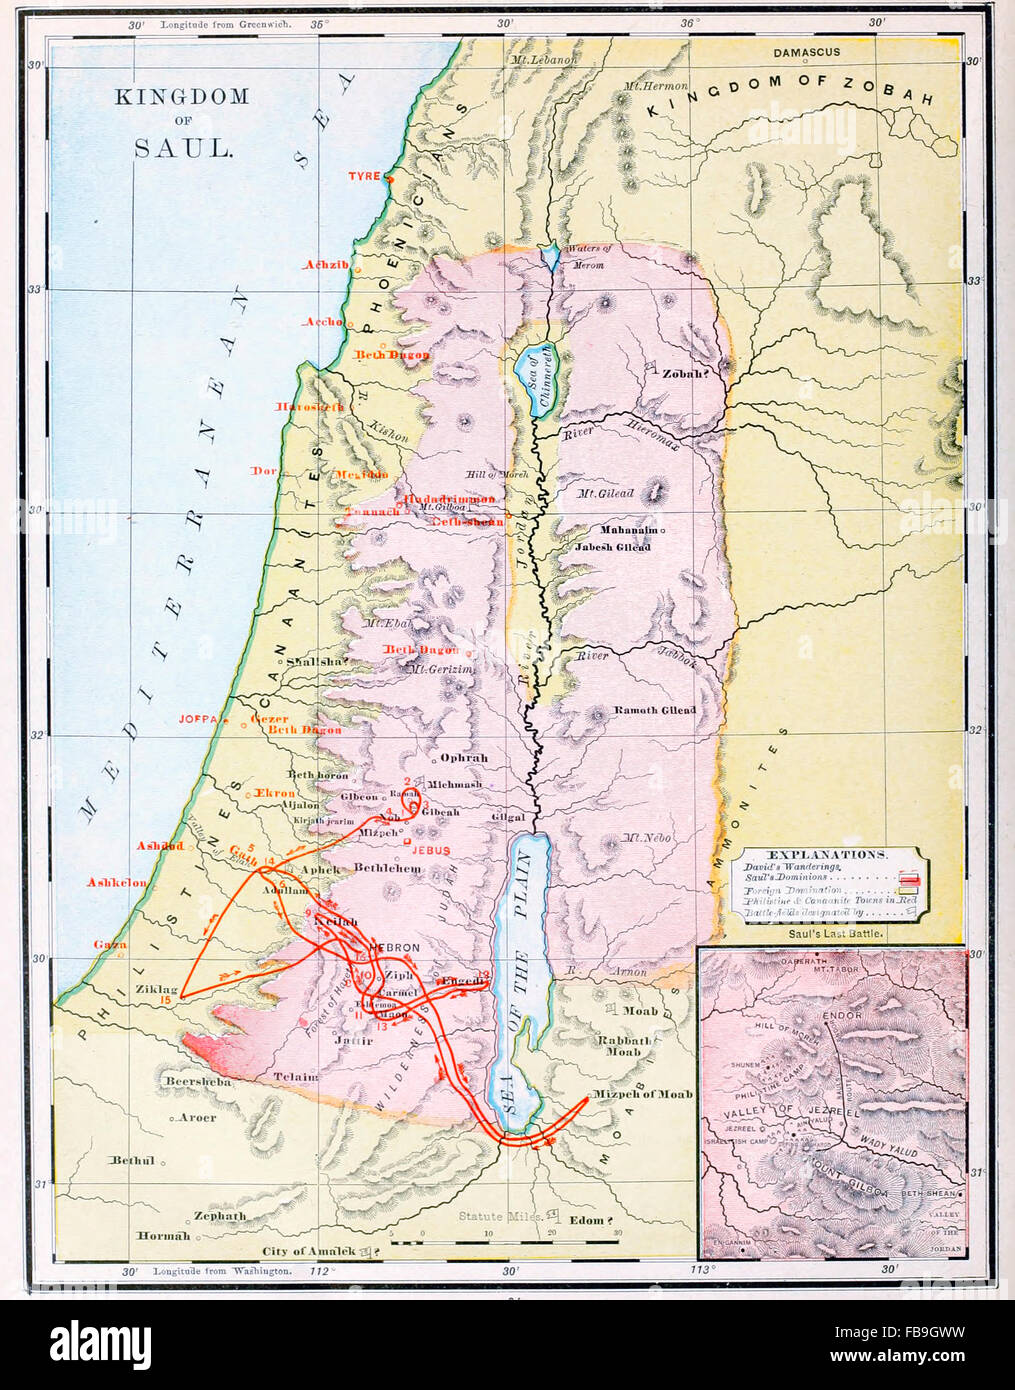 Map of kingdom of saul israel old testament stock photo 93023893 map of kingdom of saul israel old testament gumiabroncs Images